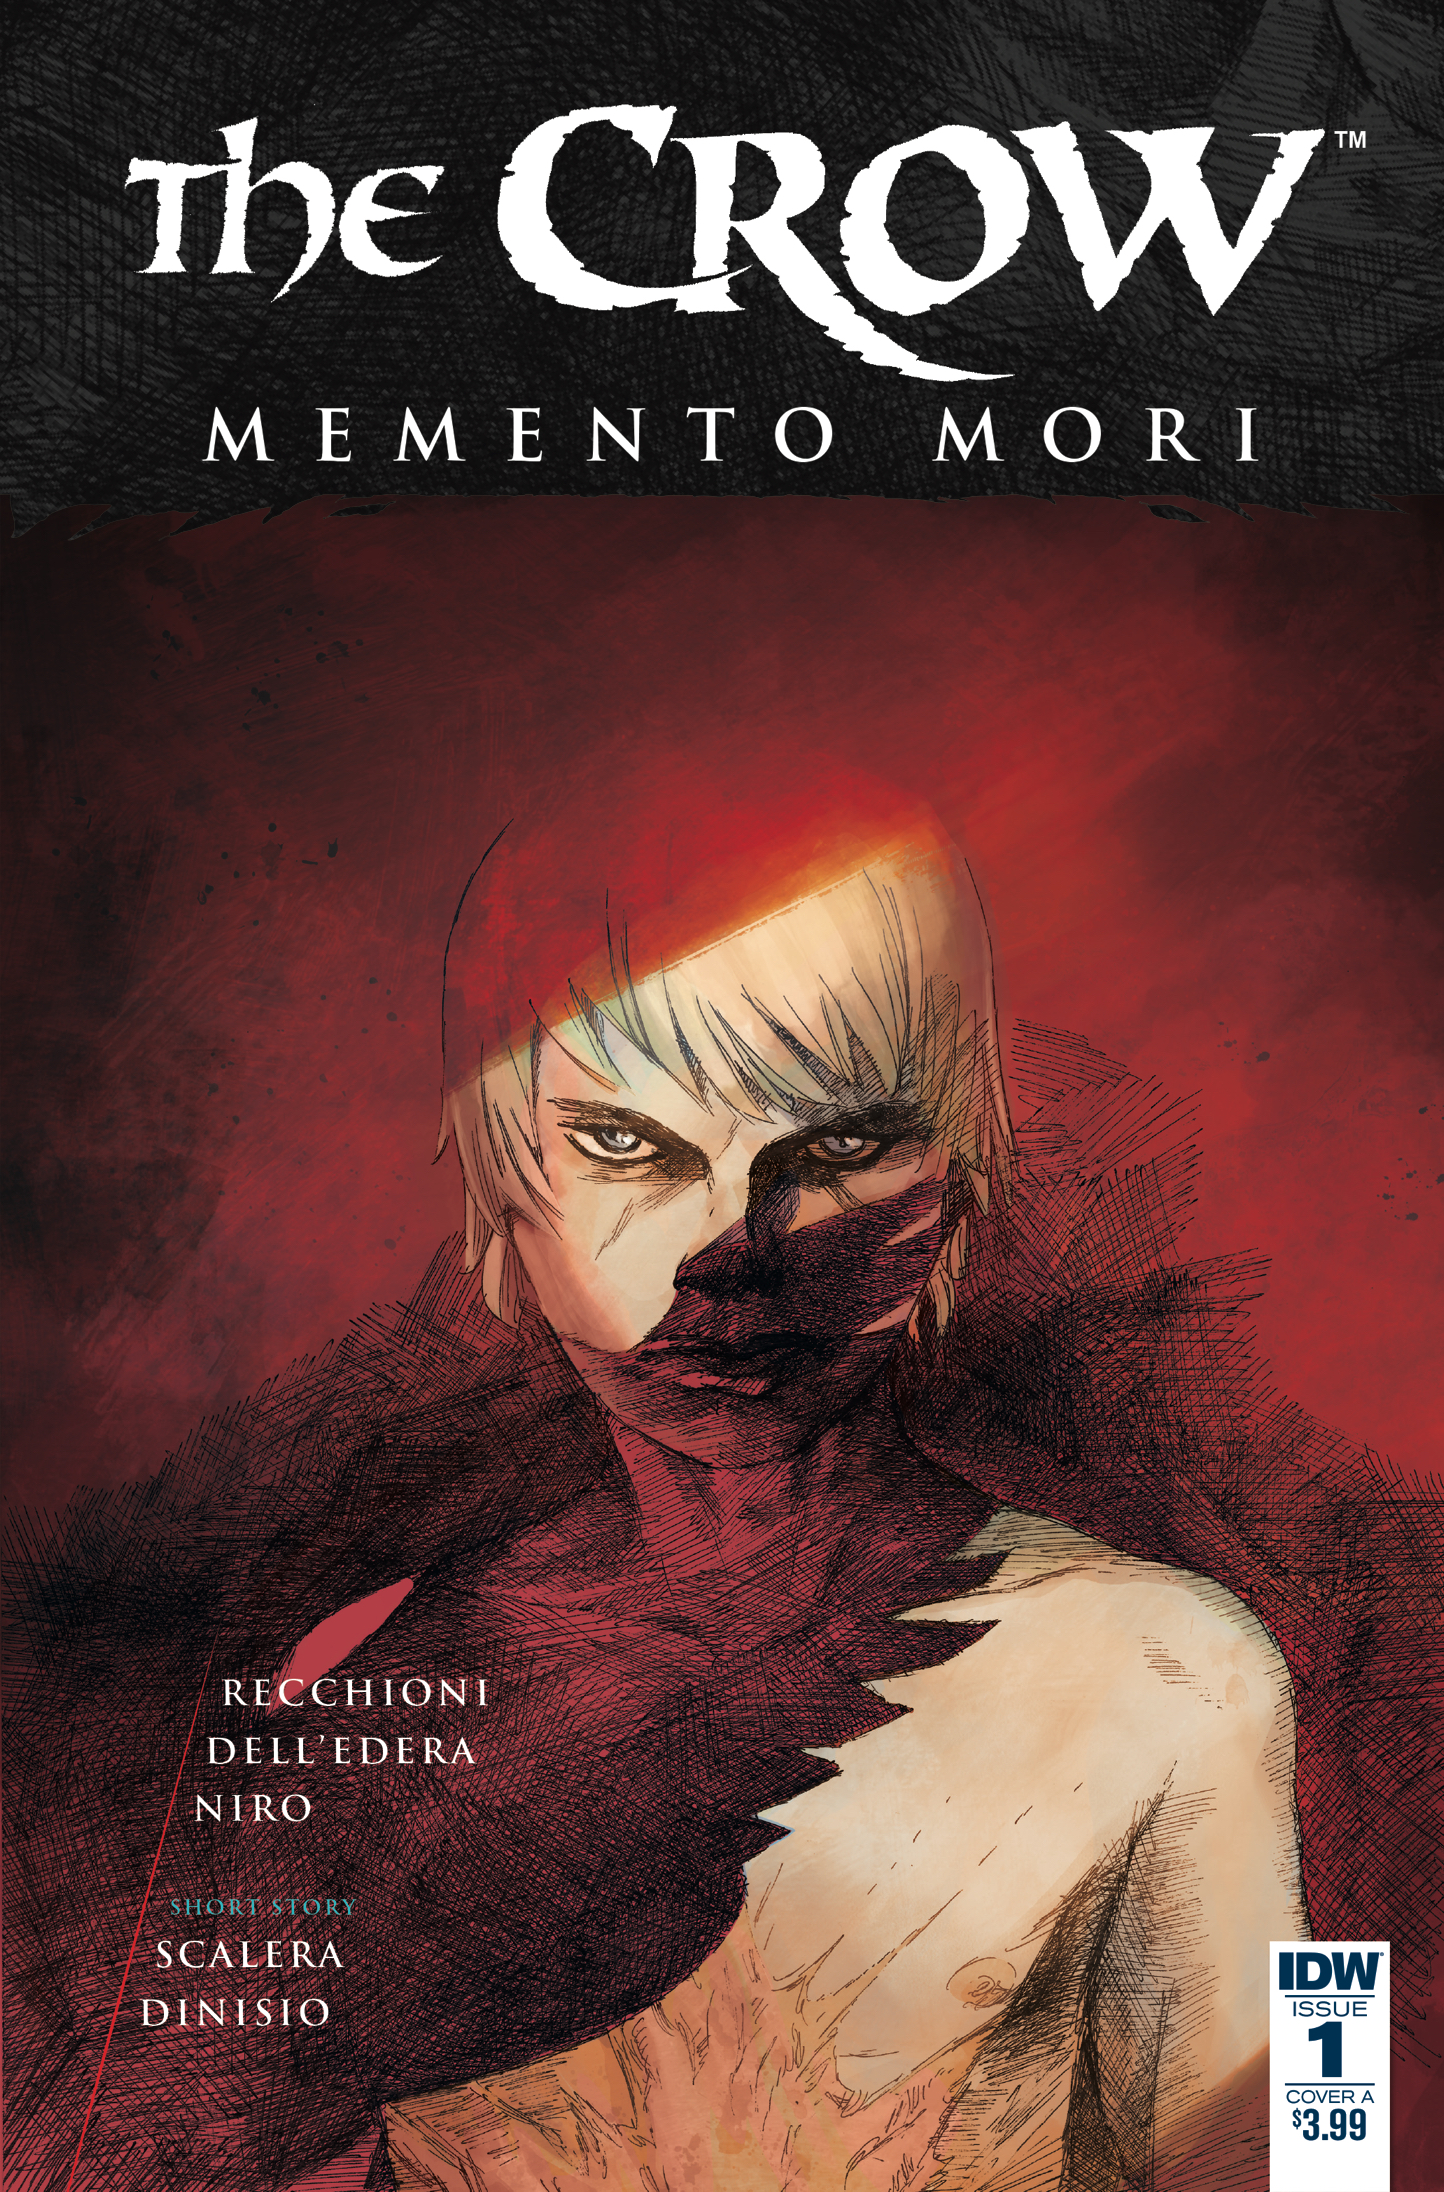 The Crow: Memento Mori (MS4)